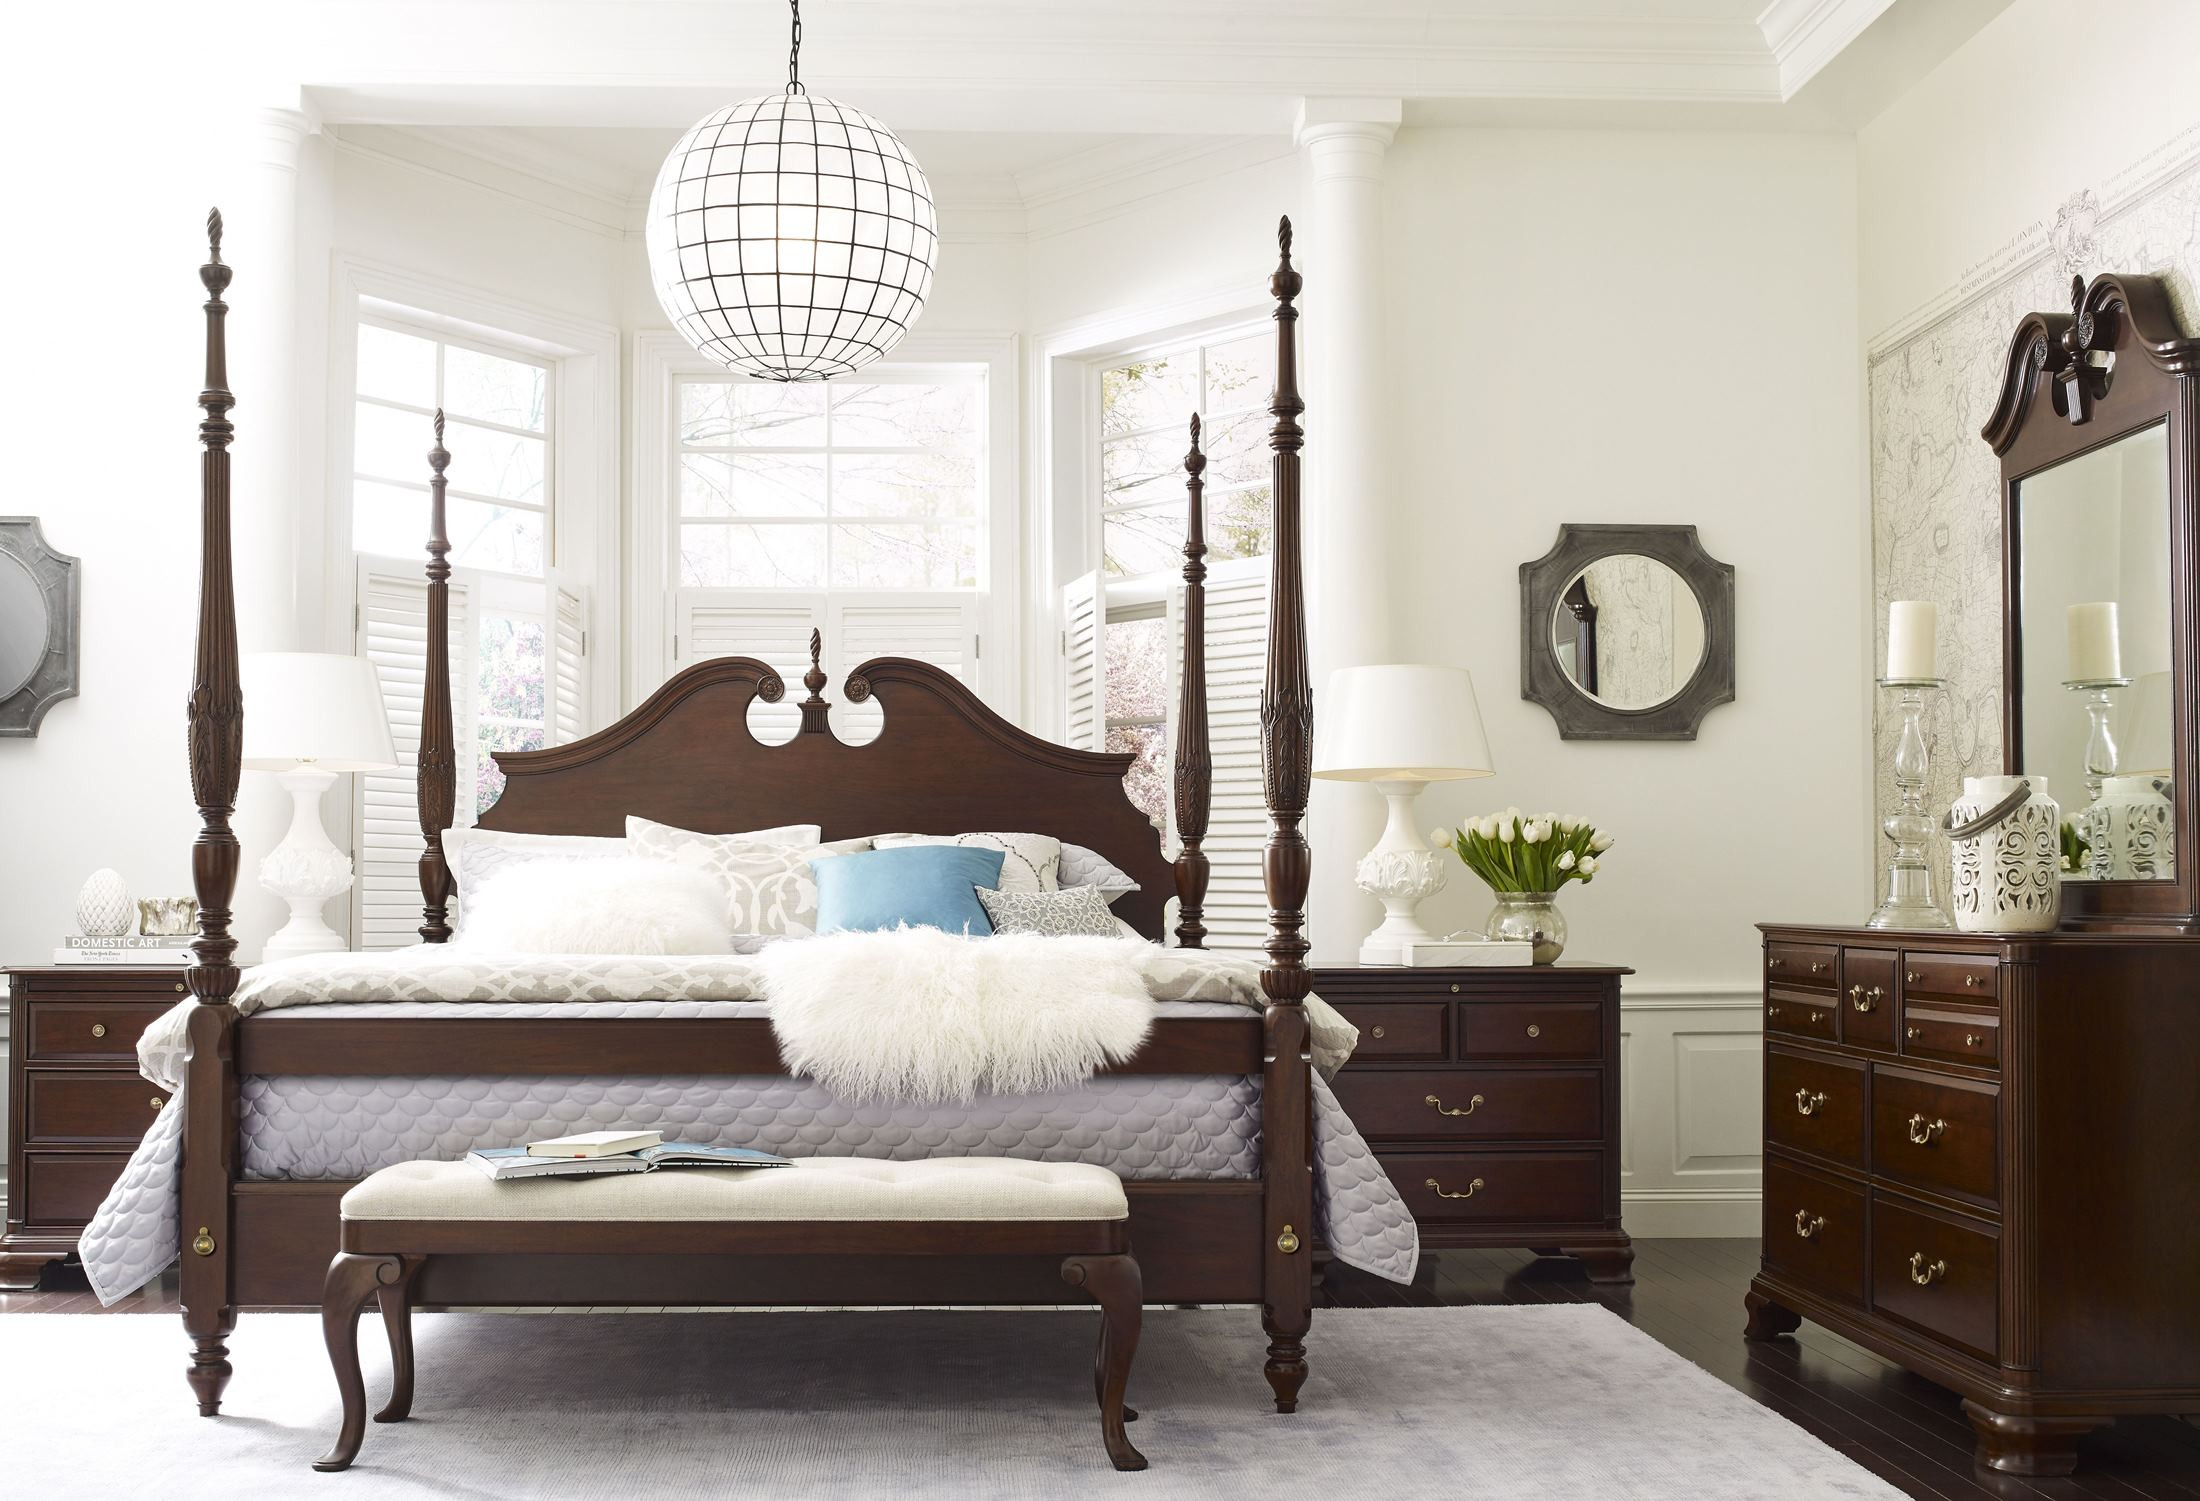 Hadleigh Rice Carved King Poster Bed from Kincaid Furniture ...